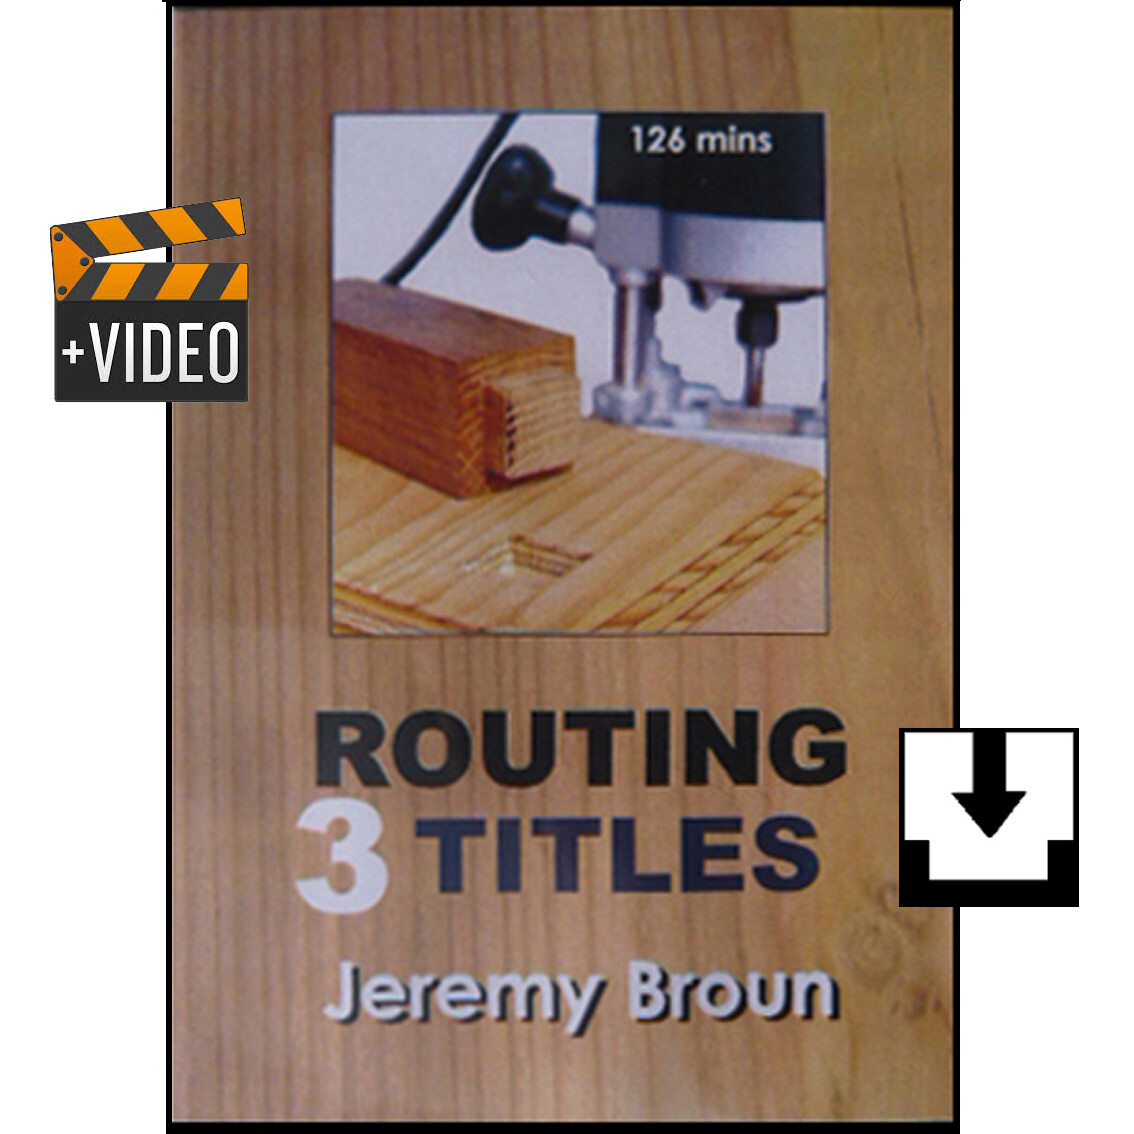 THREE ROUTING TITLES - Downloads (1) Essential Routing (2) Jointcutting with the Router (3) Router Jigging. These are the definitive videos on routing that are both comprehensive and in depth.